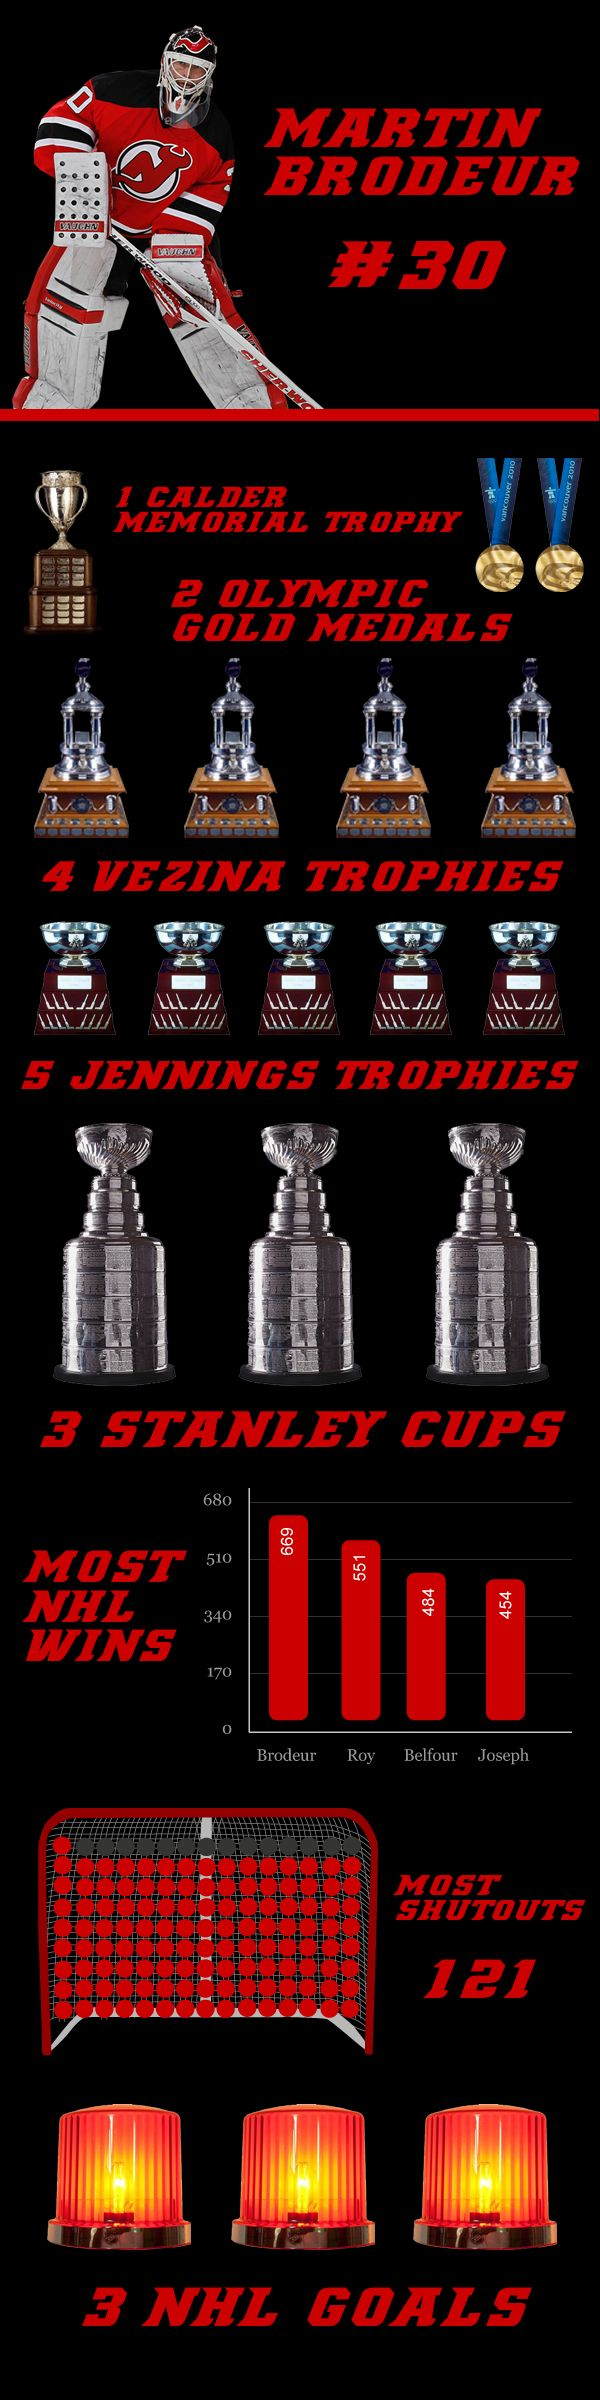 Check out all of Martin Brodeur's accomplishments with this #NUM3R0LOGY https://www.facebook.com/groups/crets4bets